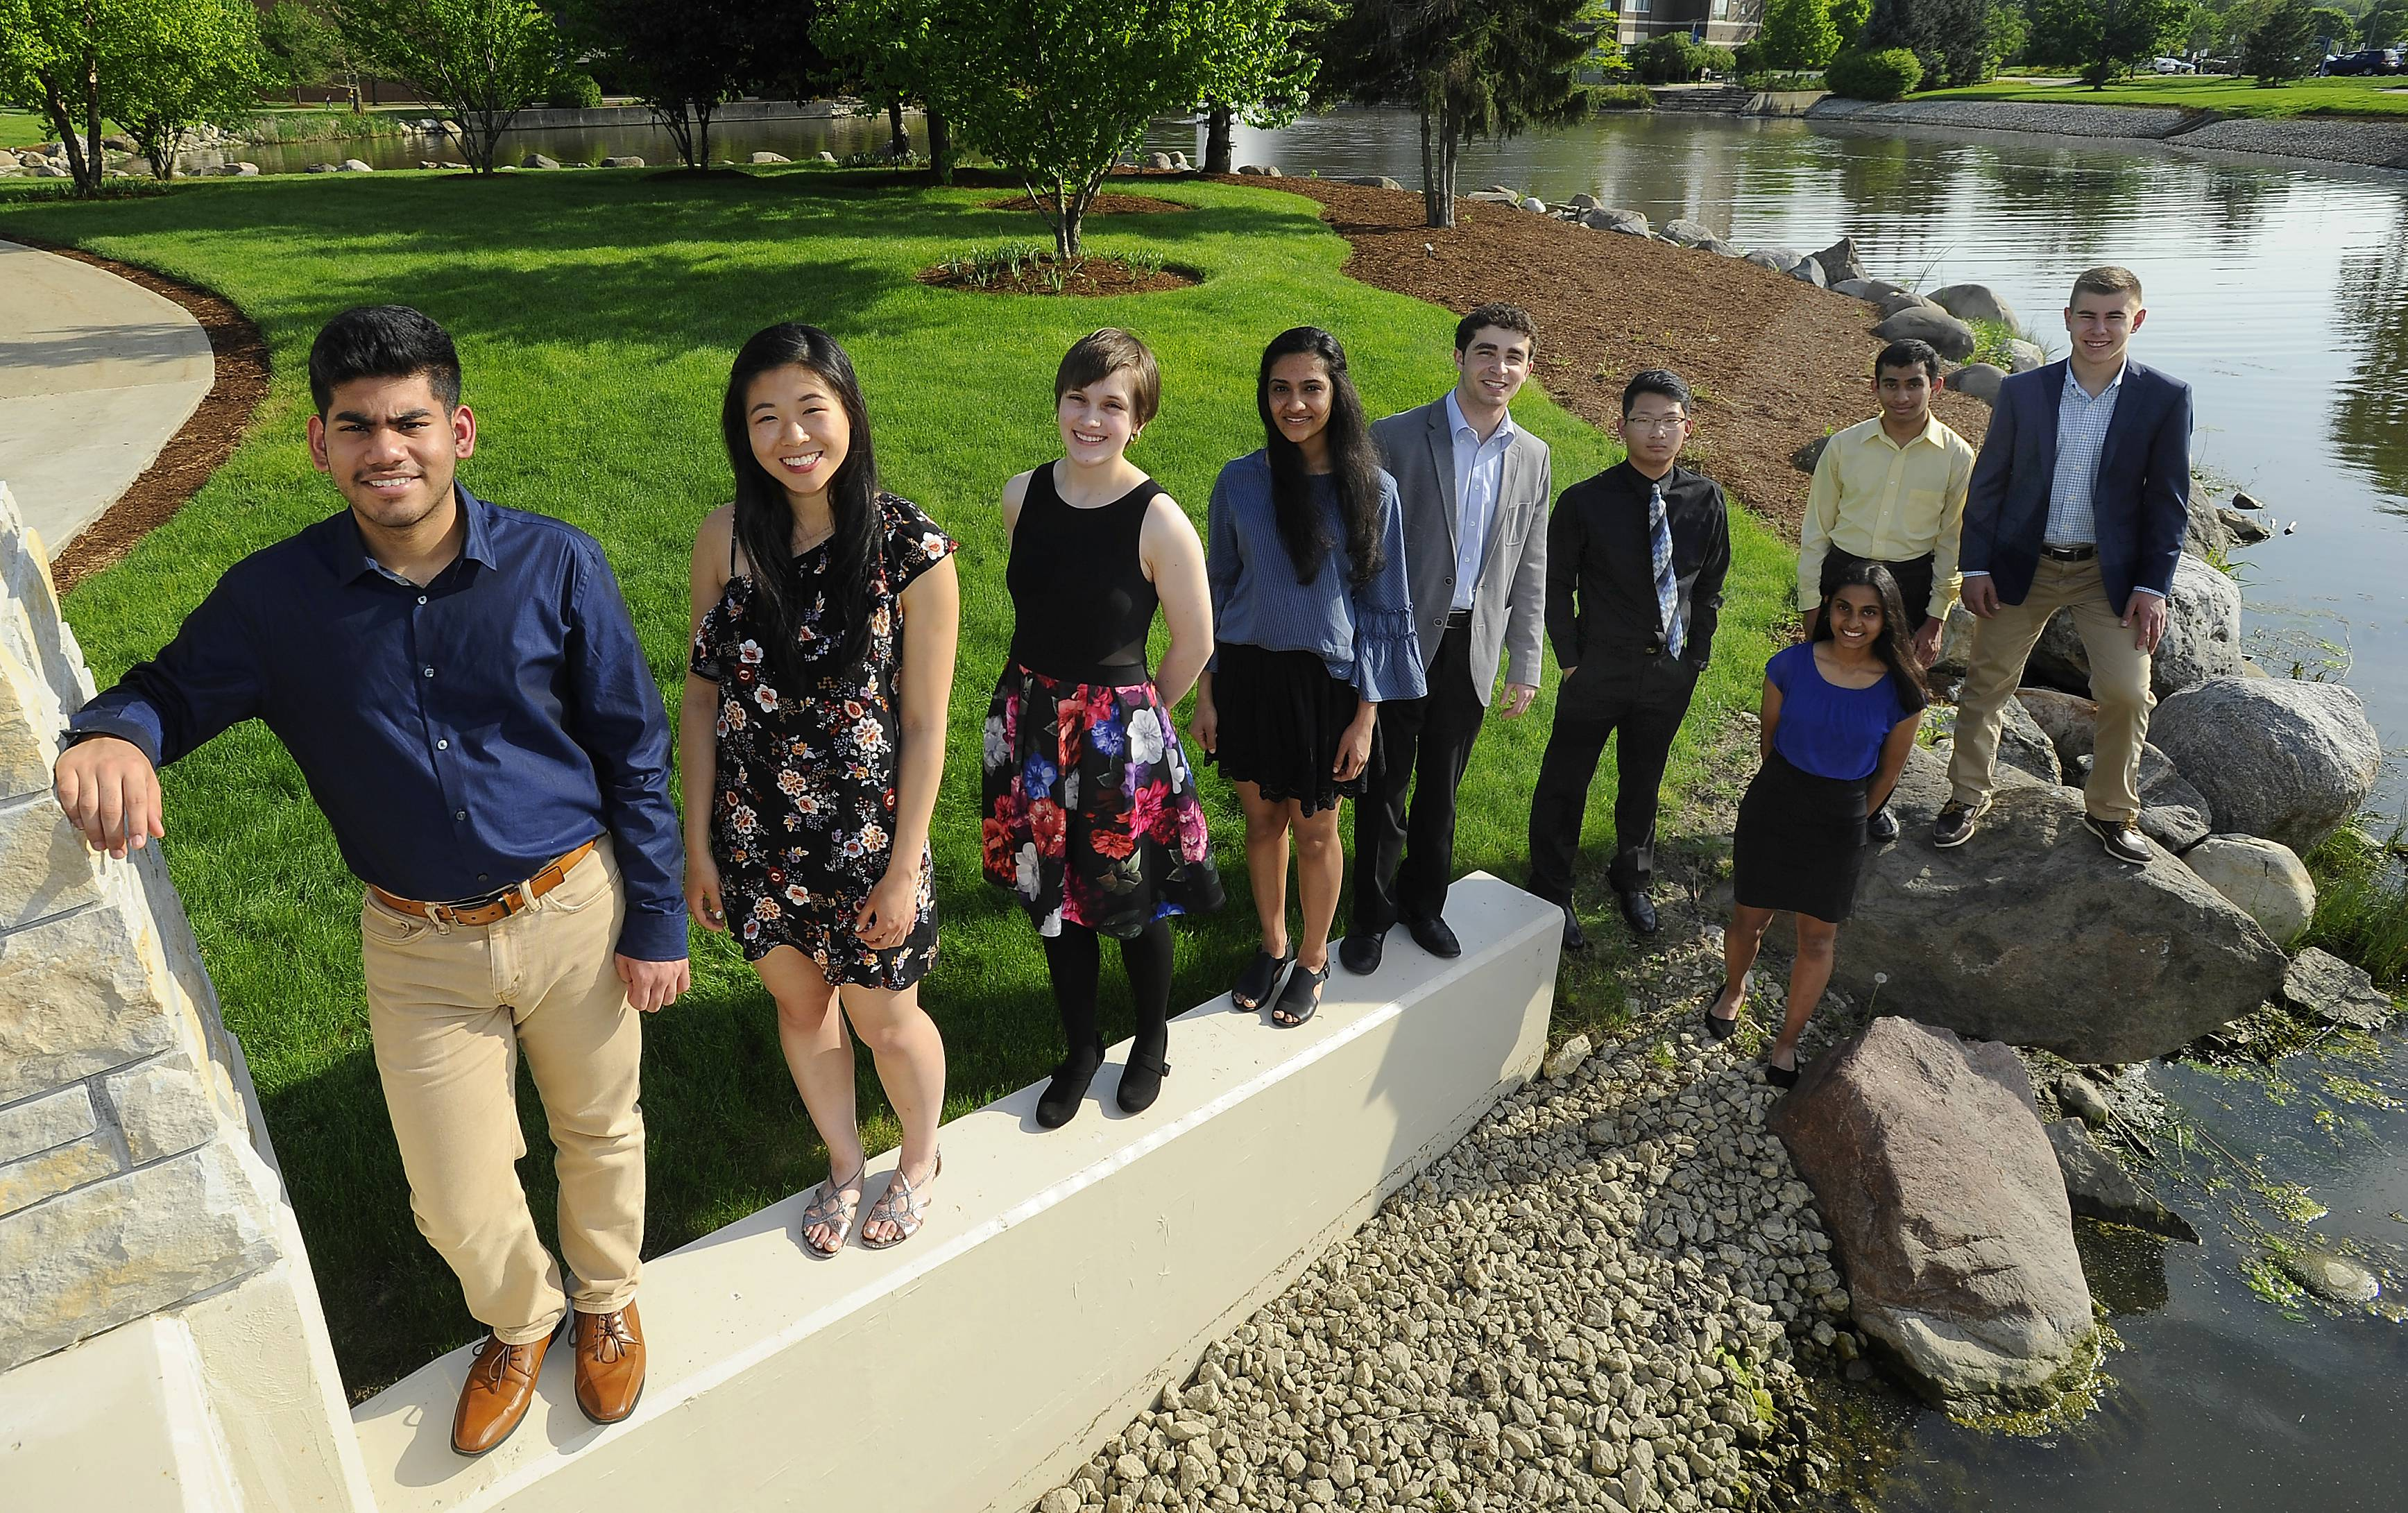 The Northwest Suburban Academic Team, gathered at Harper College. From left: Nitinshankar Subramanian, Conant High School; Allison Zhang, Conant High School; Carissa N. Lehning, Elk Grove High School; Uma Pradeepan, Schaumburg High School; Jeremy Yoder, St. Viator High School; Kevin Chen, William Fremd High School; Bhagirath Mehta, Maine West High School; John McDonough, Hersey High School and Megha Ramanathan, Hoffman Estates High School. Not pictured: Hari Ramakrishnan, Barrington High School.